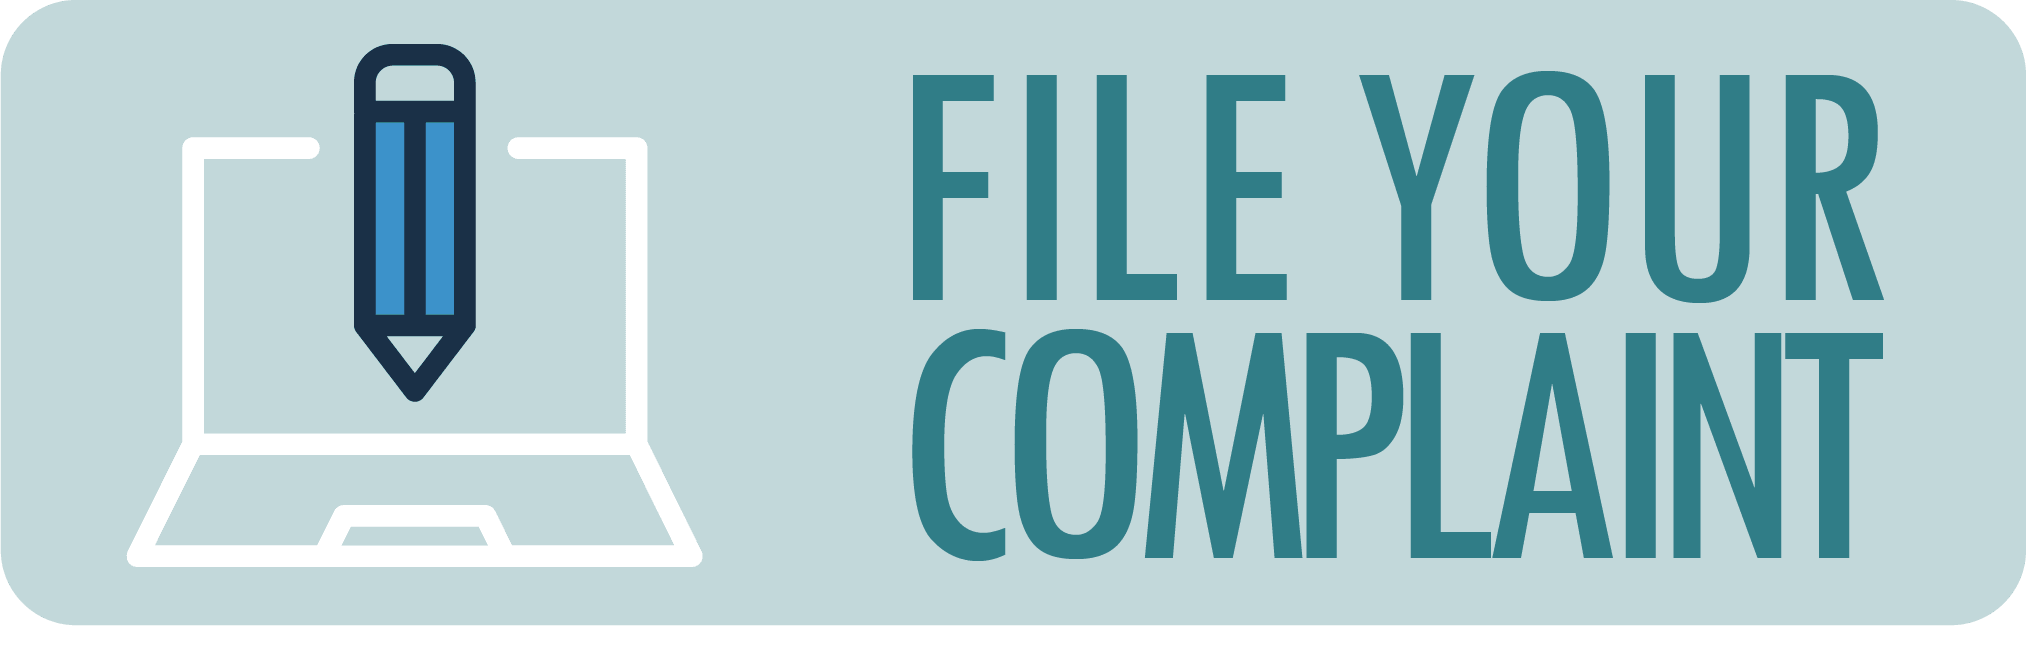 File a Complaint Button Opens in new window